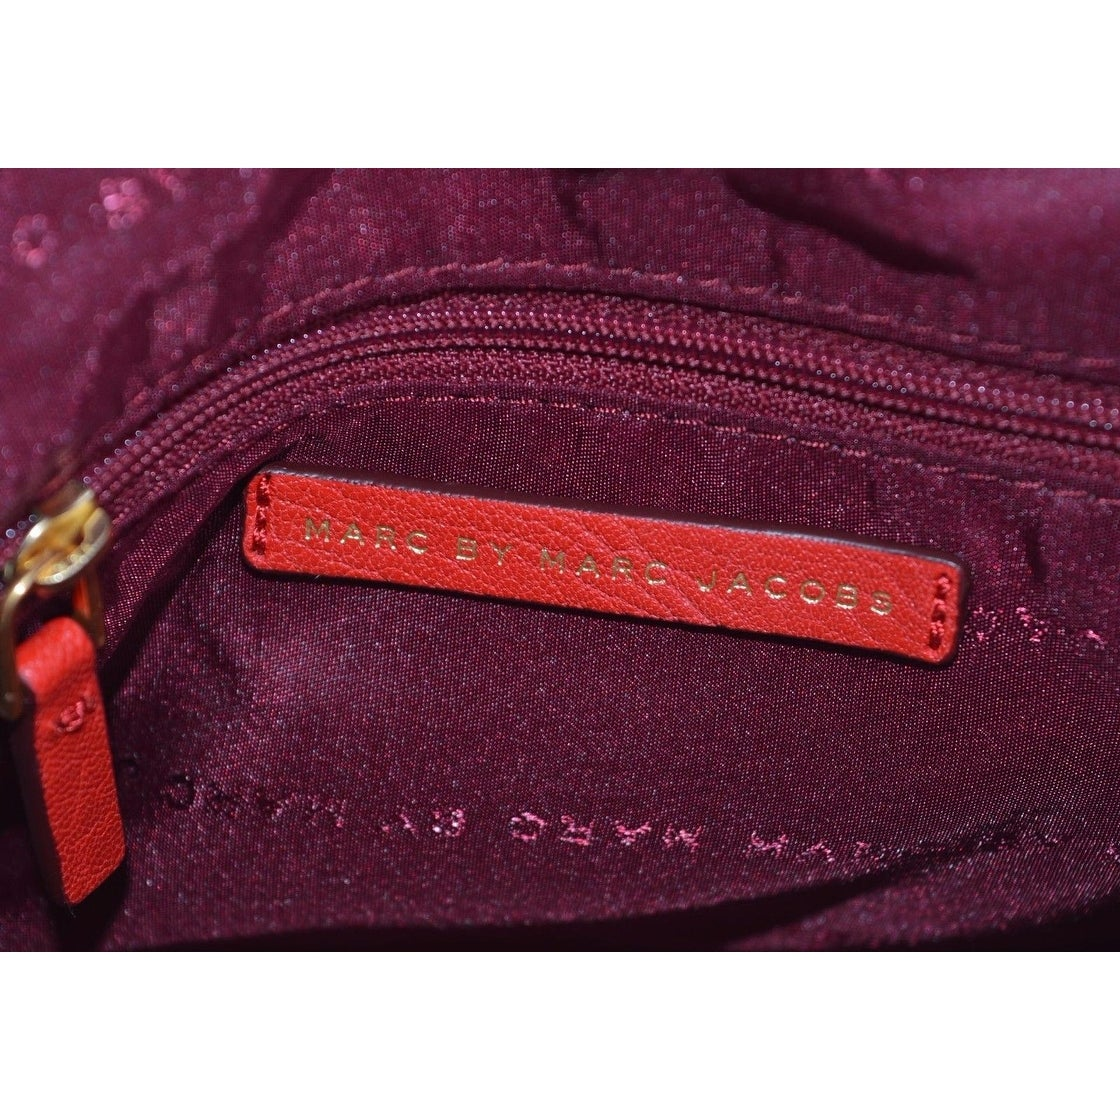 b85b3505b4ec Shop Marc By Marc Jacobs M0004767 Flipping Out RED Leather Crossbody Purse  Bag - 7.25 x 8 x 2 inches - On Sale - Ships To Canada - Overstock.ca -  20916951